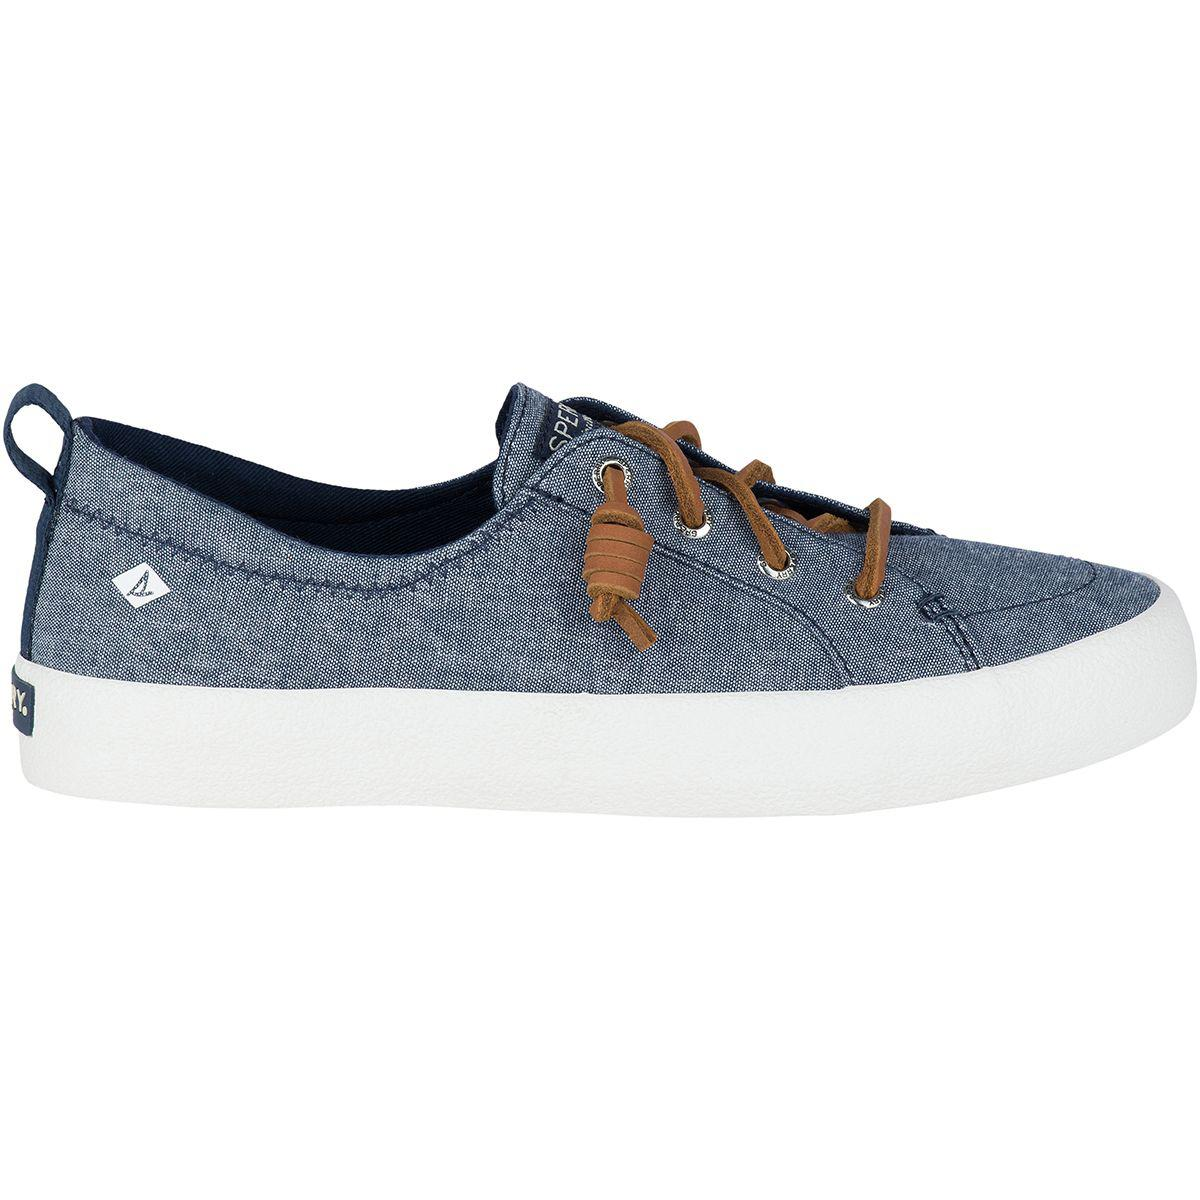 Sperry Top-Sider Crest Vibe Washable Leather (Women's) Bgdh5